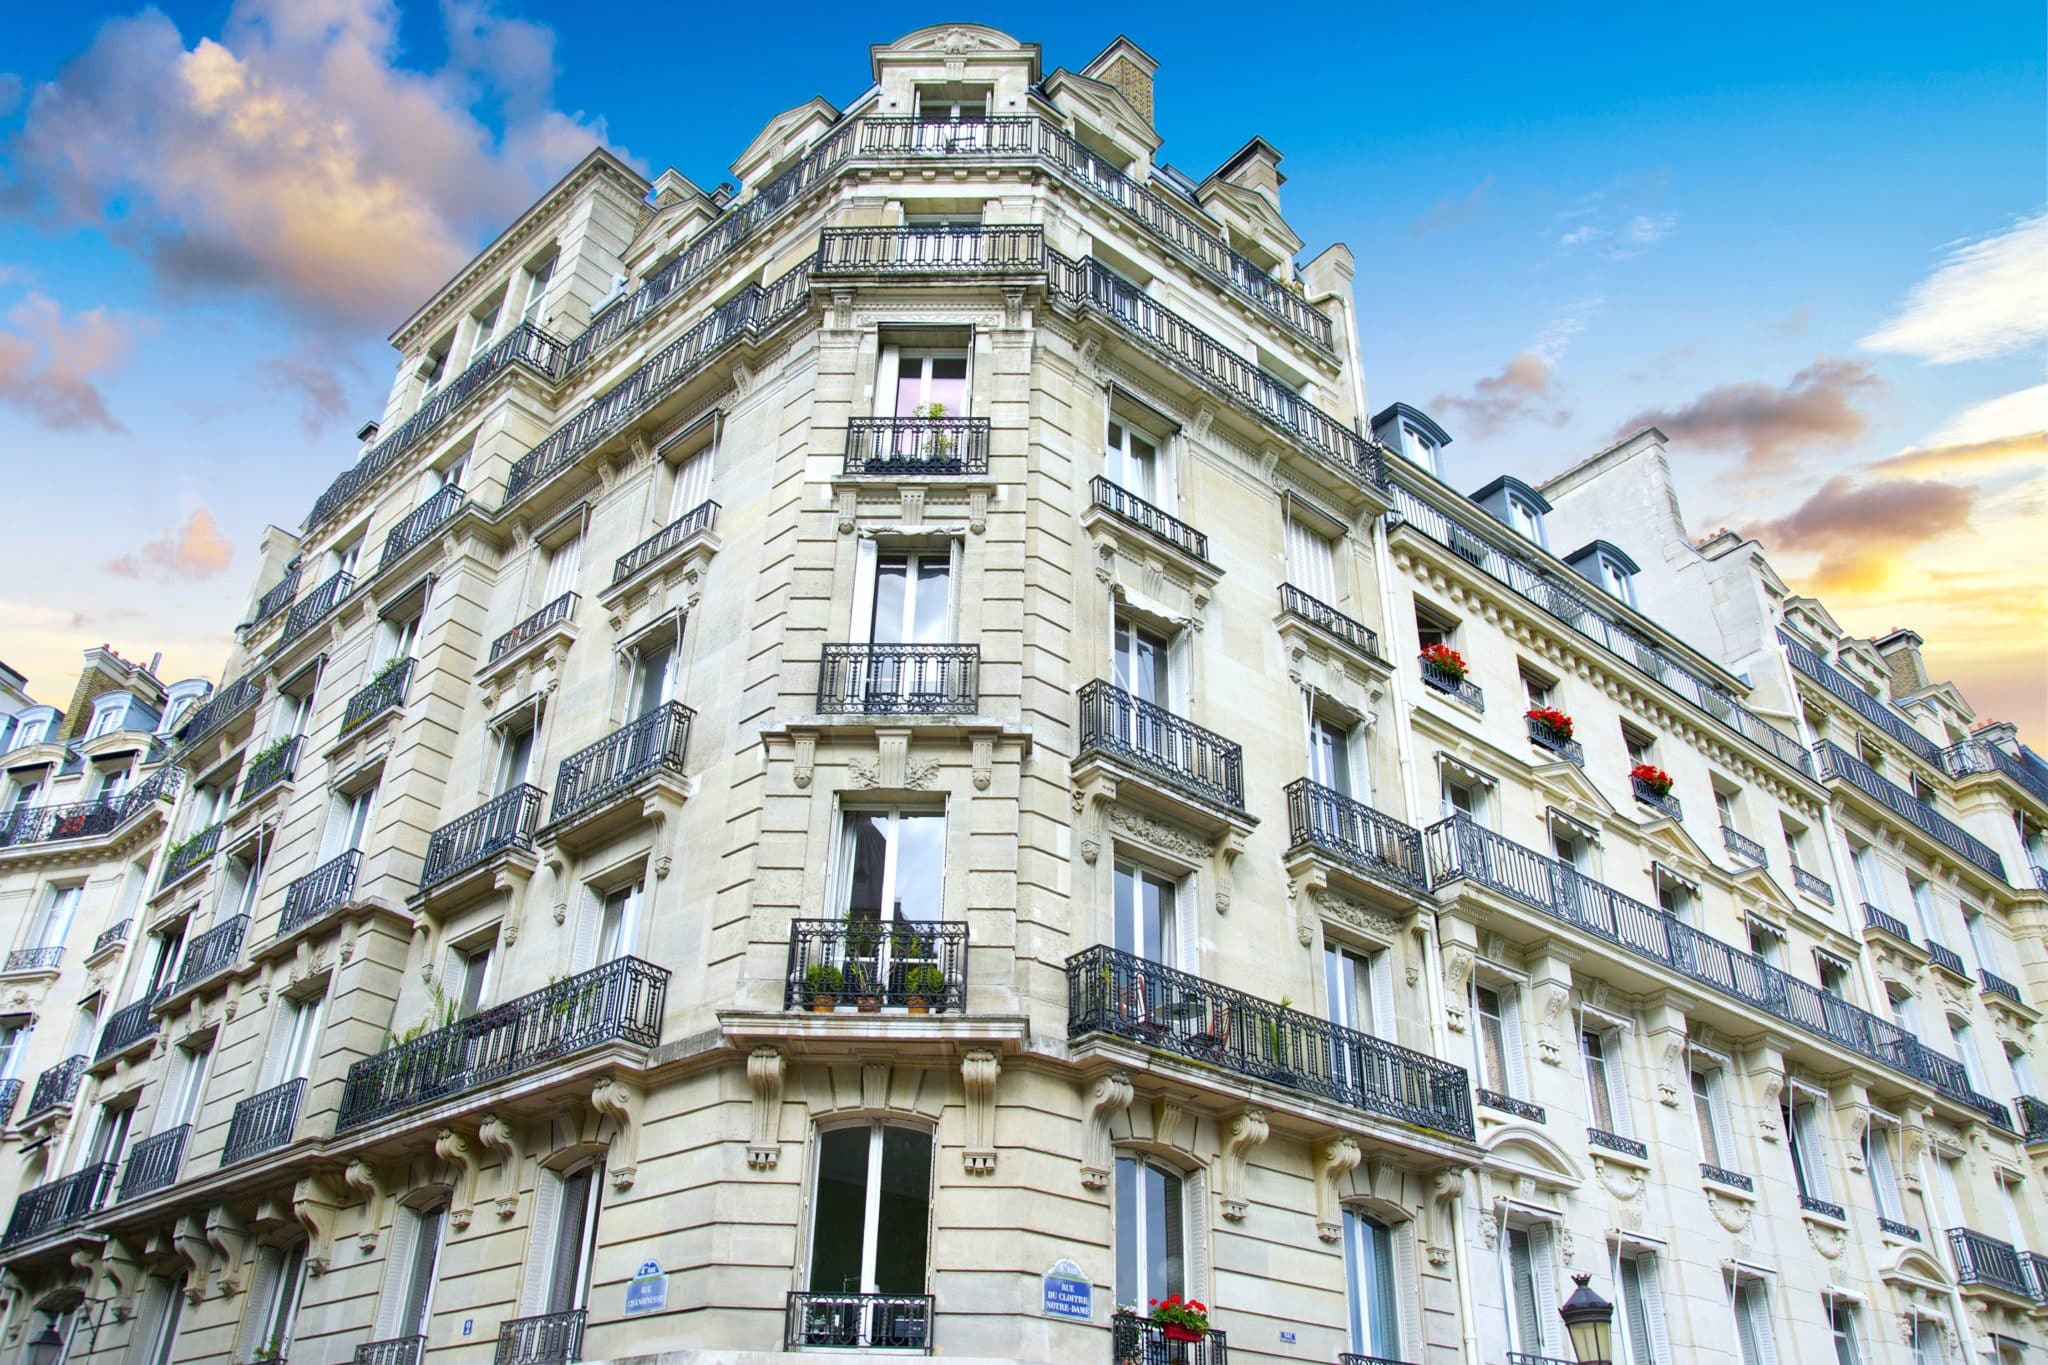 You are currently viewing Achat immobilier : les règles d'or